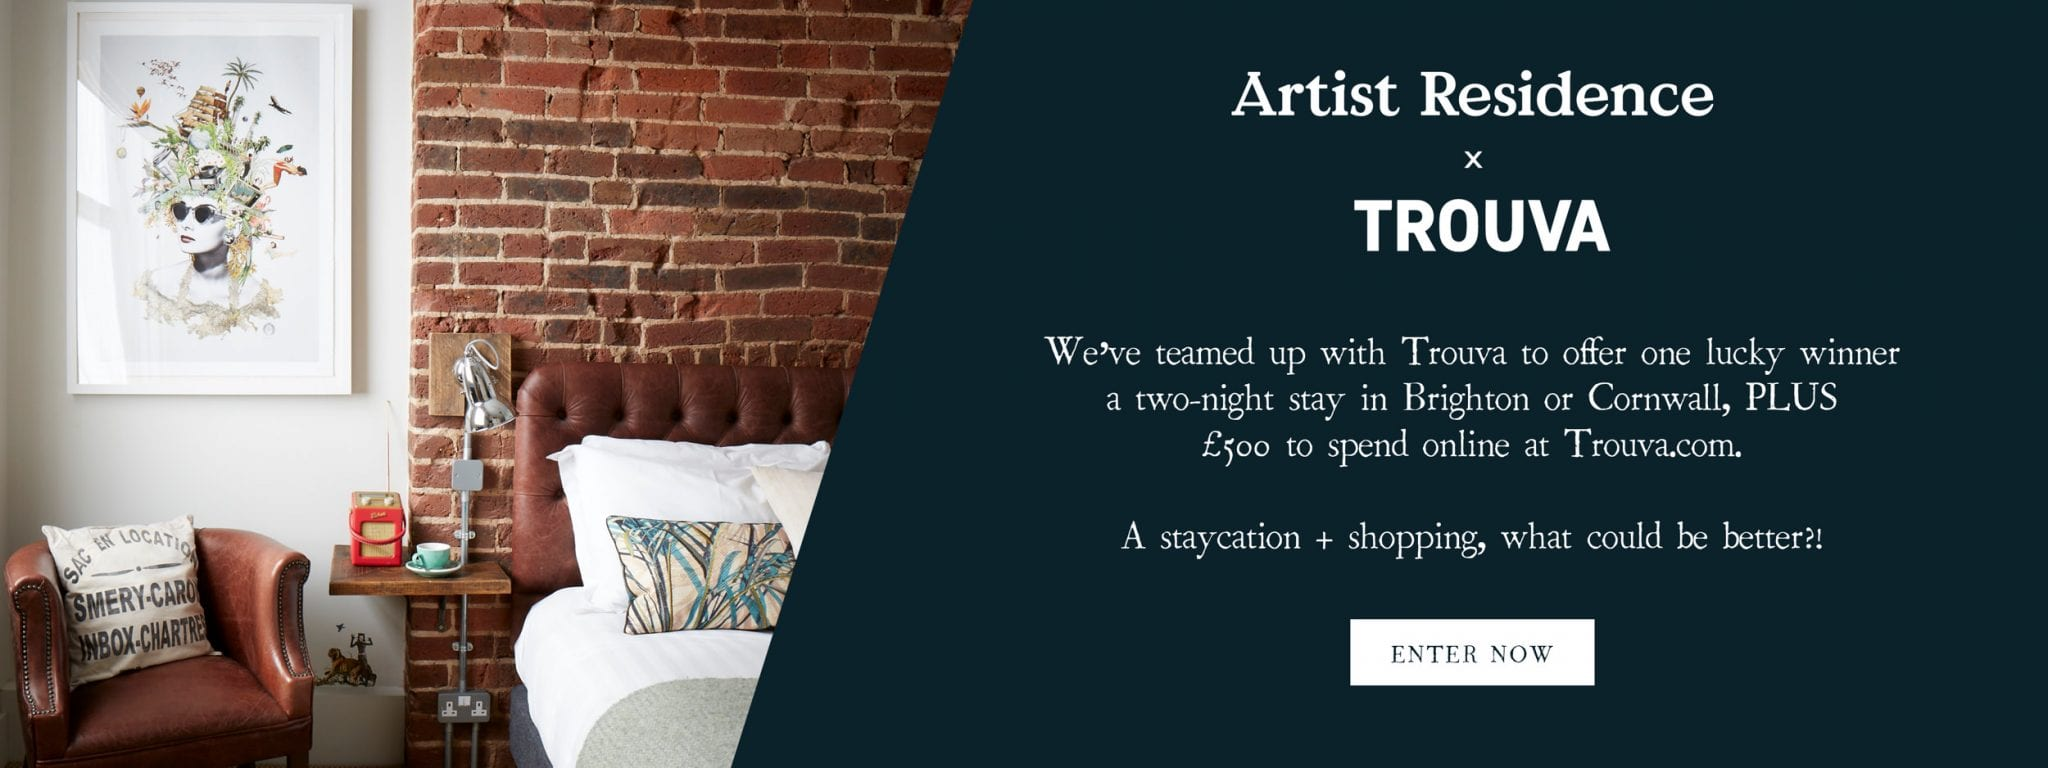 Artist Residence x TROUVA Competition Banner - Win a 2 night stay at any Artist Residence & £500 to spend at Trouva